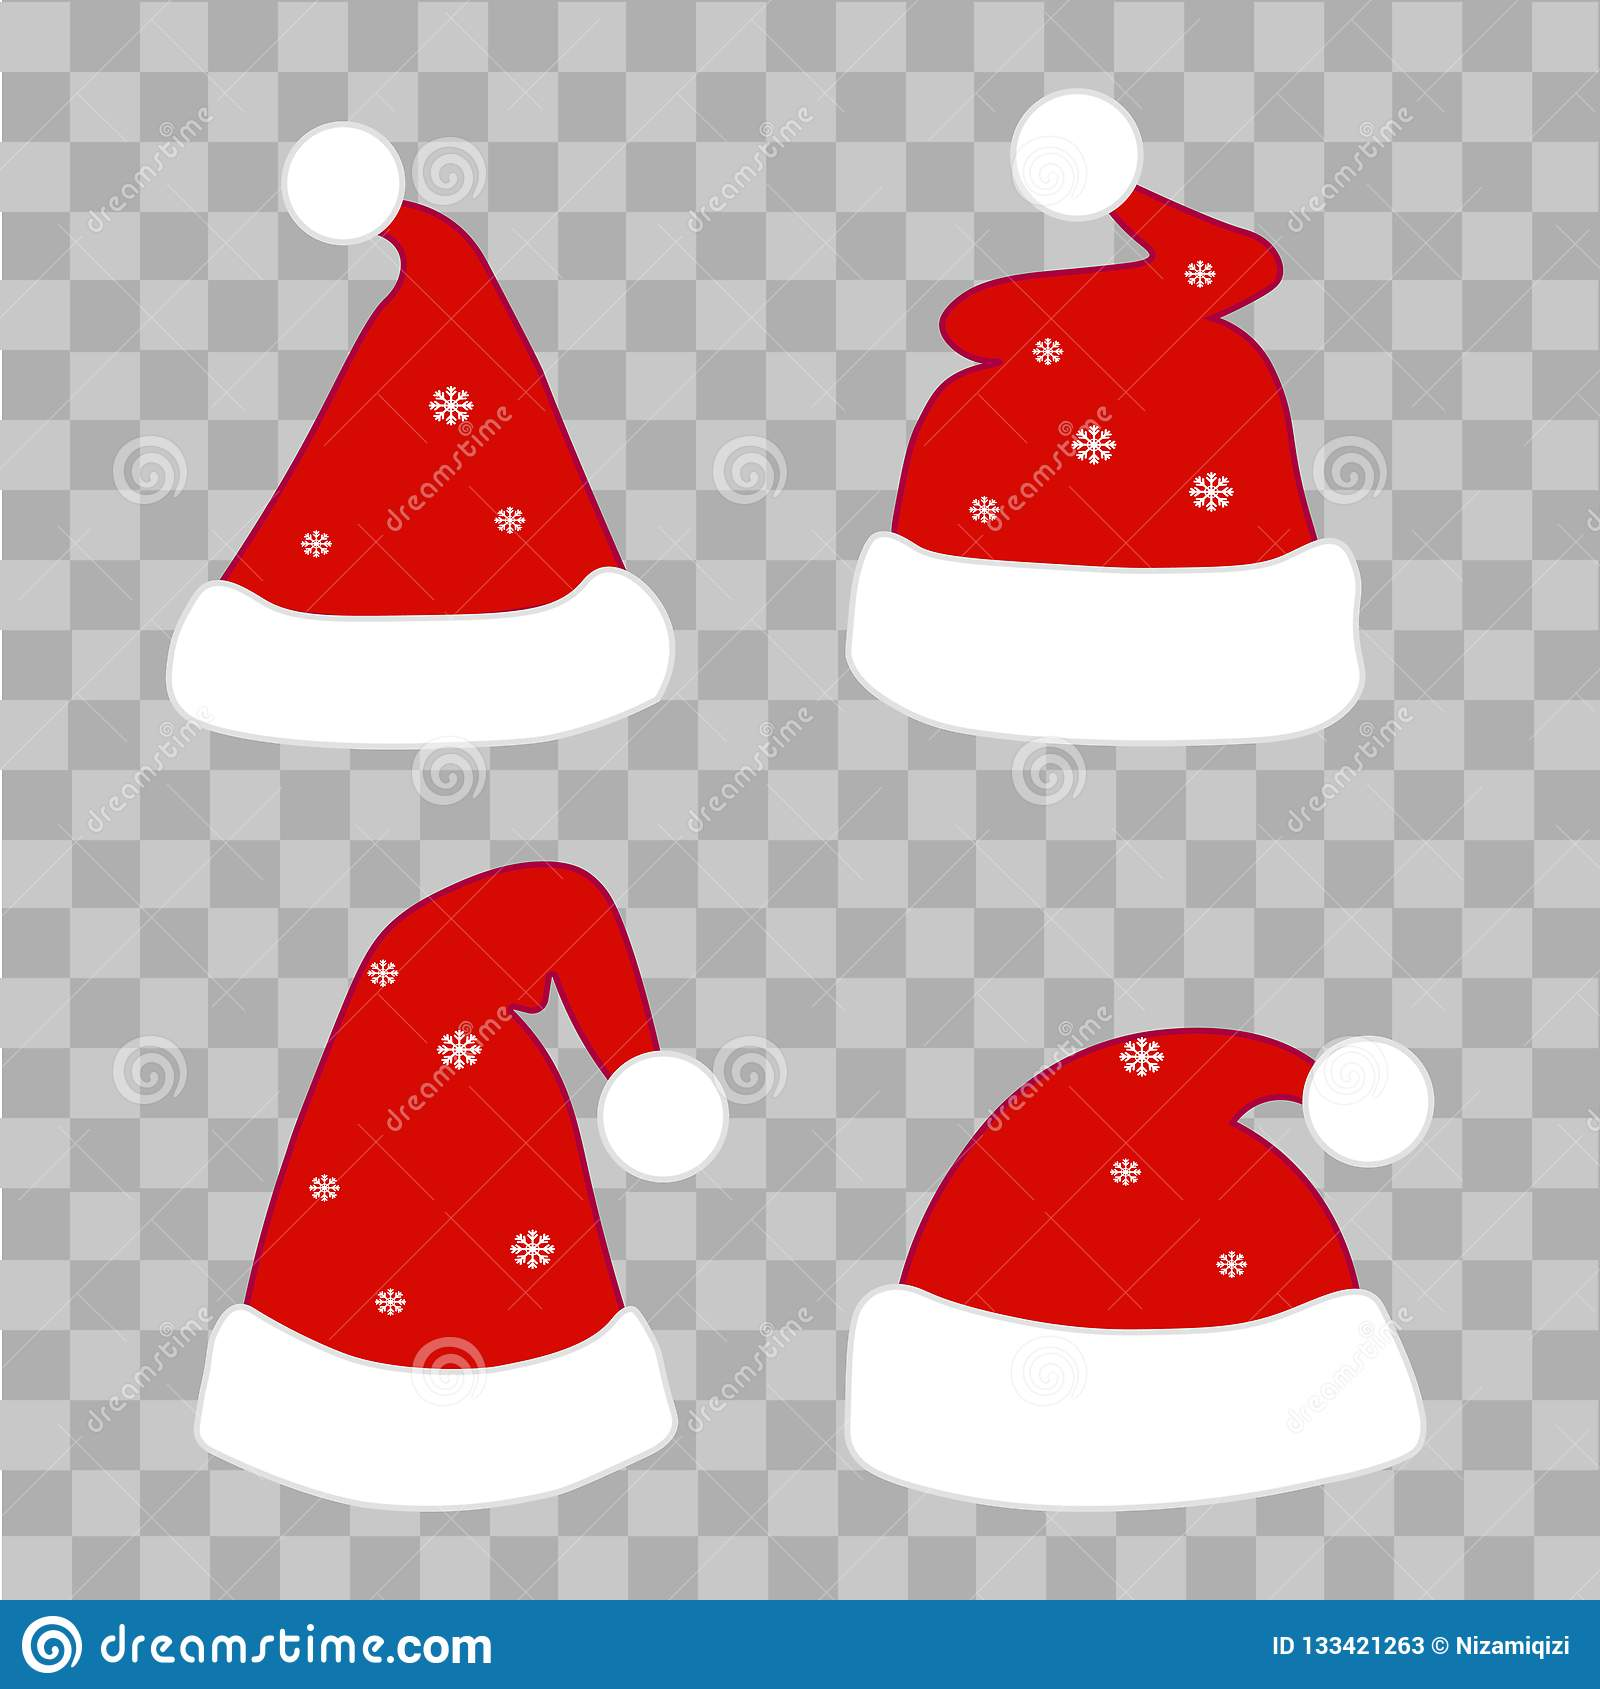 Set of Christmas hats on transparent background. Vector